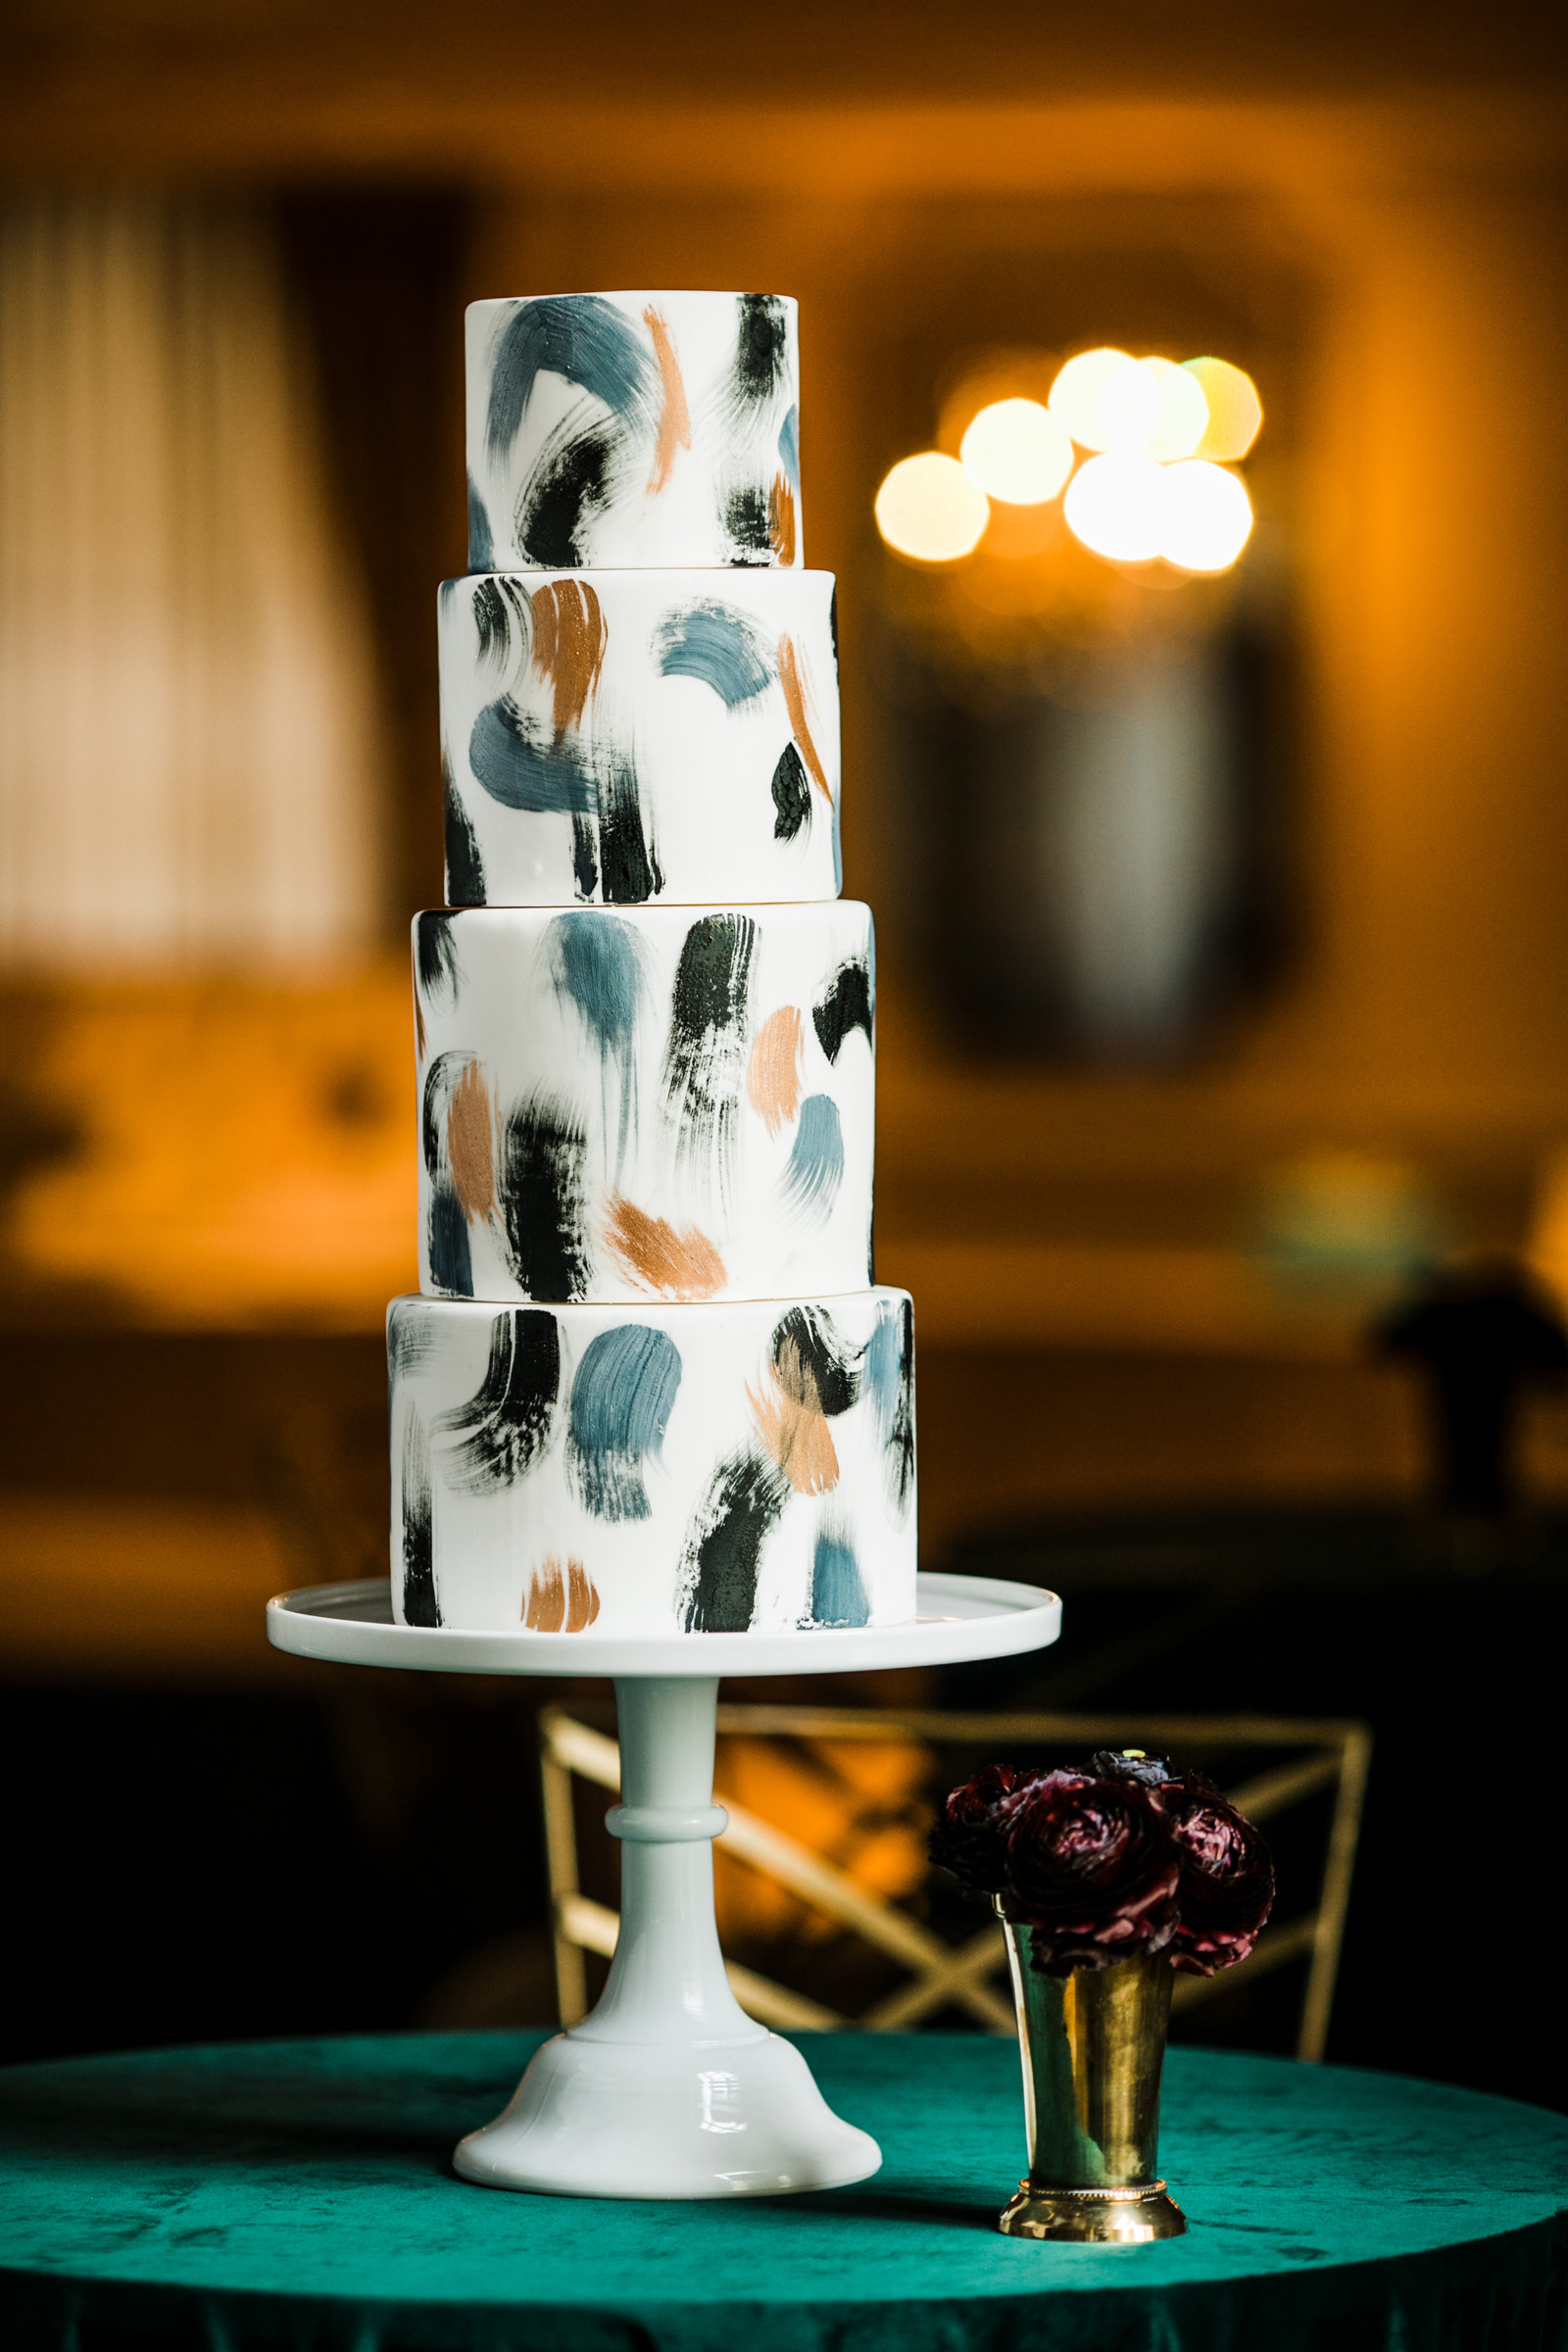 Four tier wedding cake with abstract designs - photo by Into Dust Photography